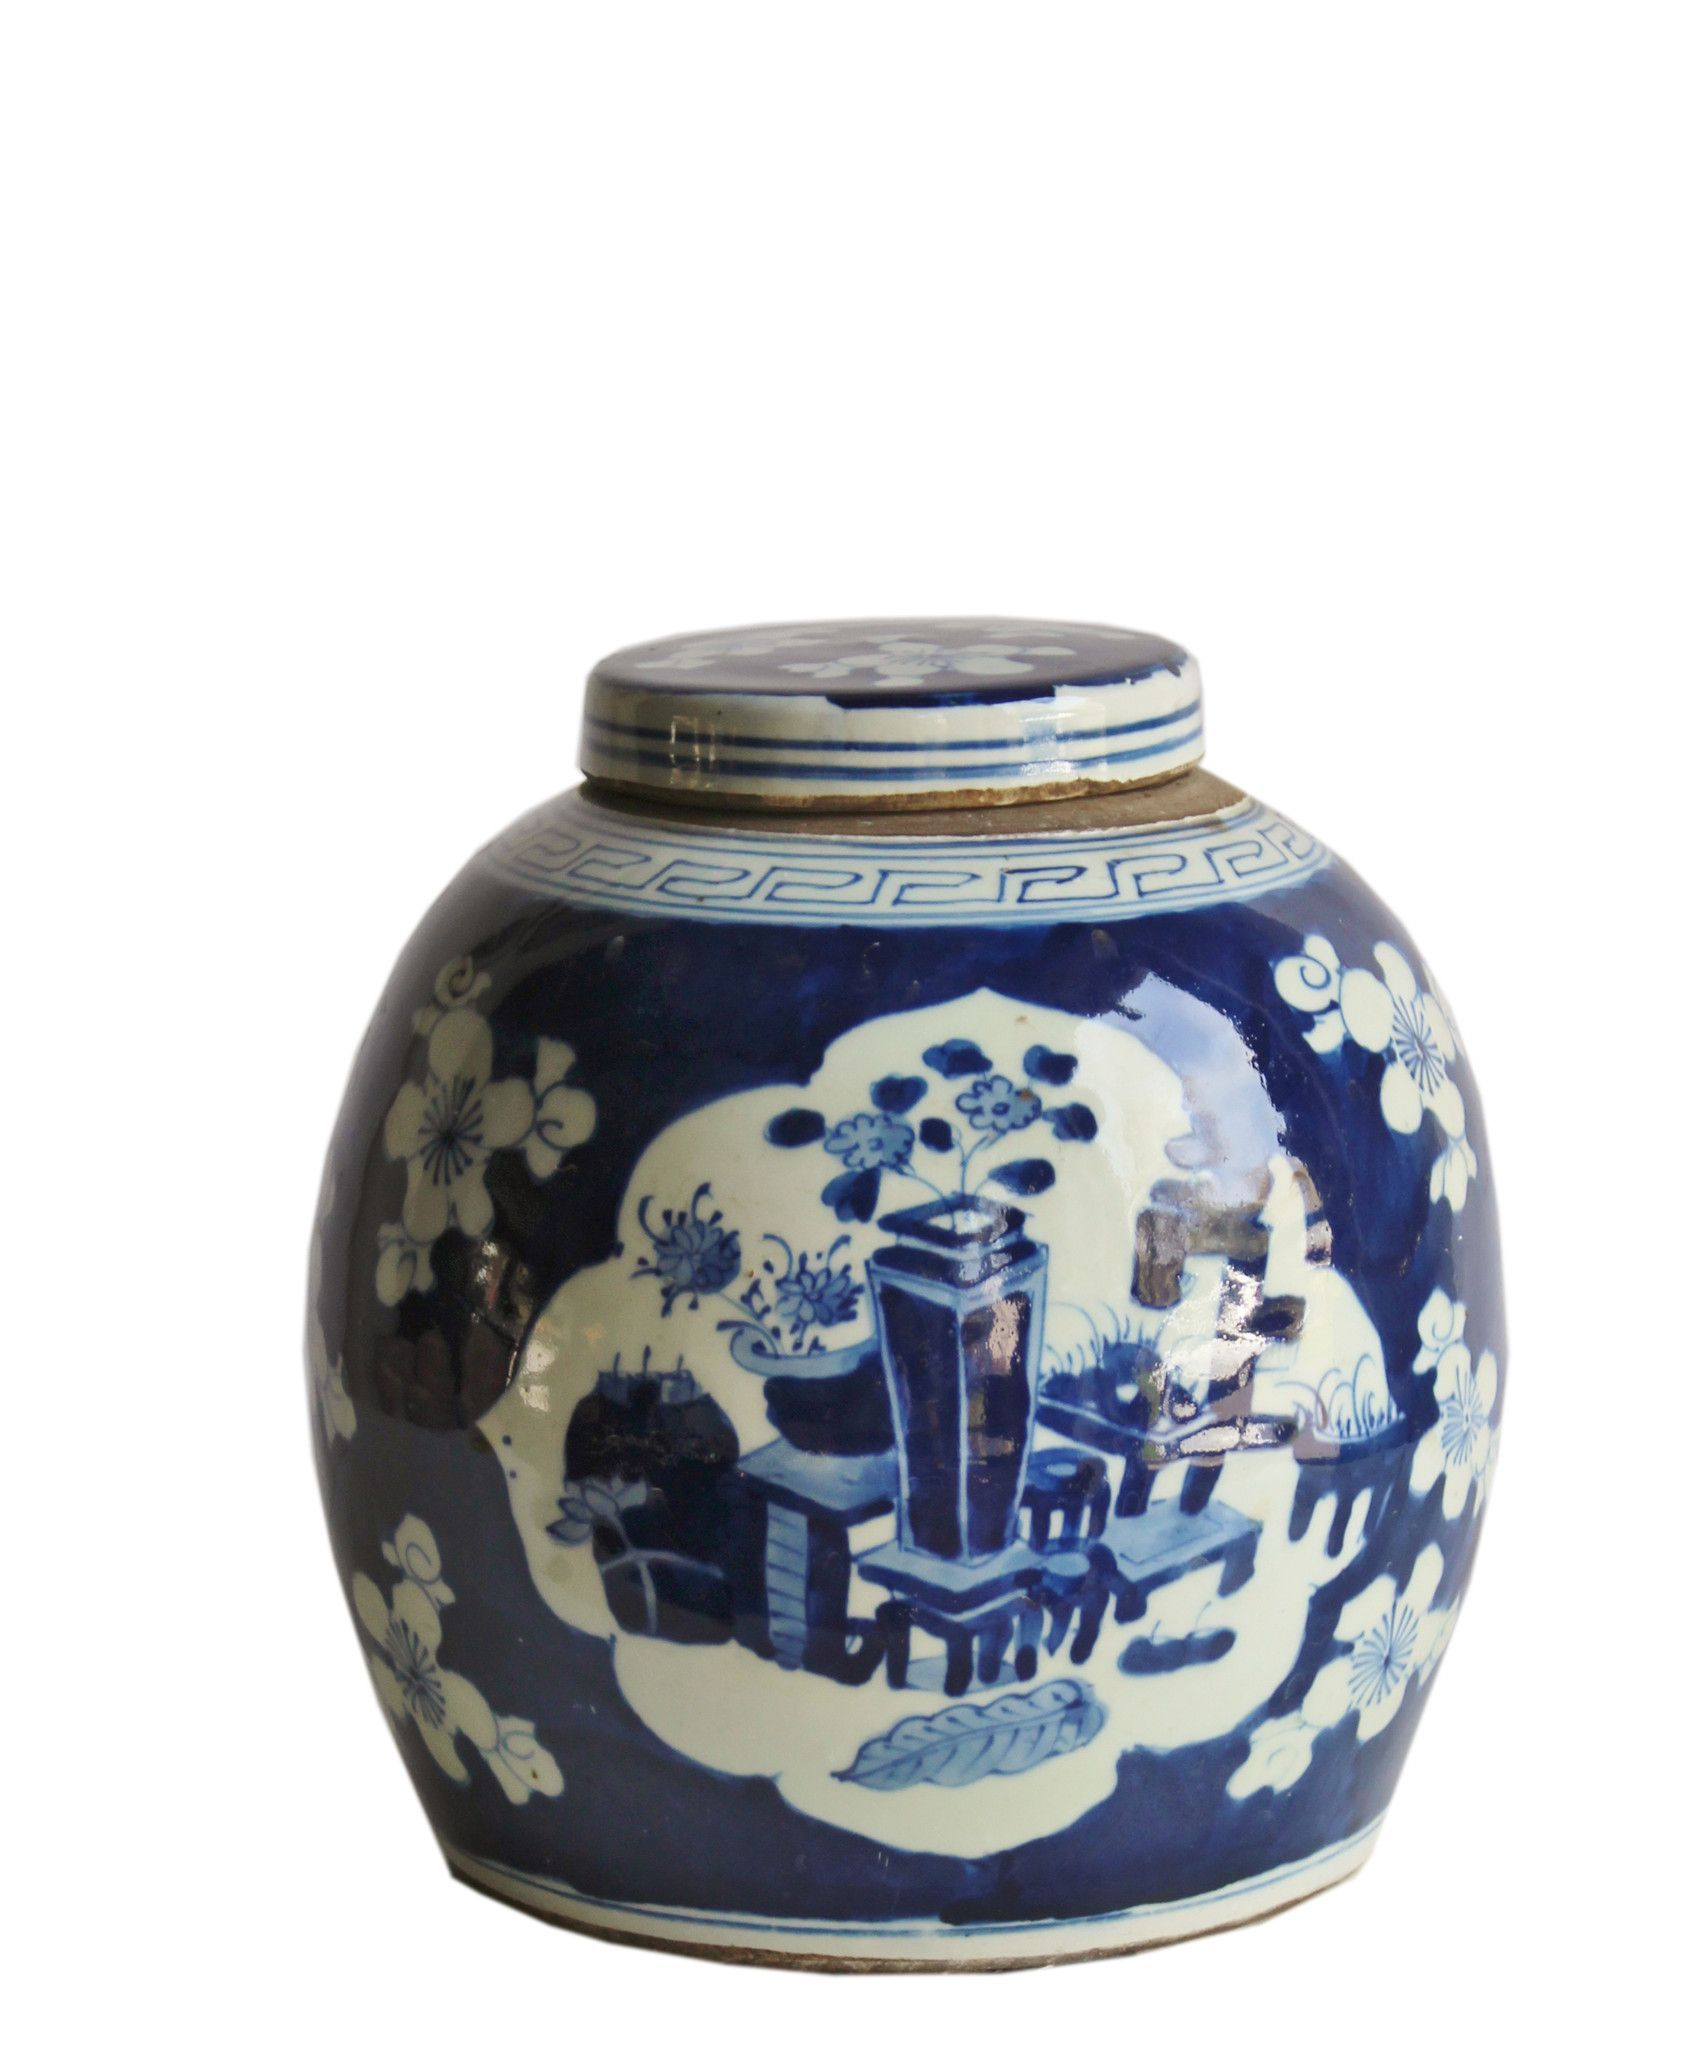 Blue White Ceramic Ginger Jar Garden Pots Painted And Featuring A Clic Shape Planter Scene Excellent Qual